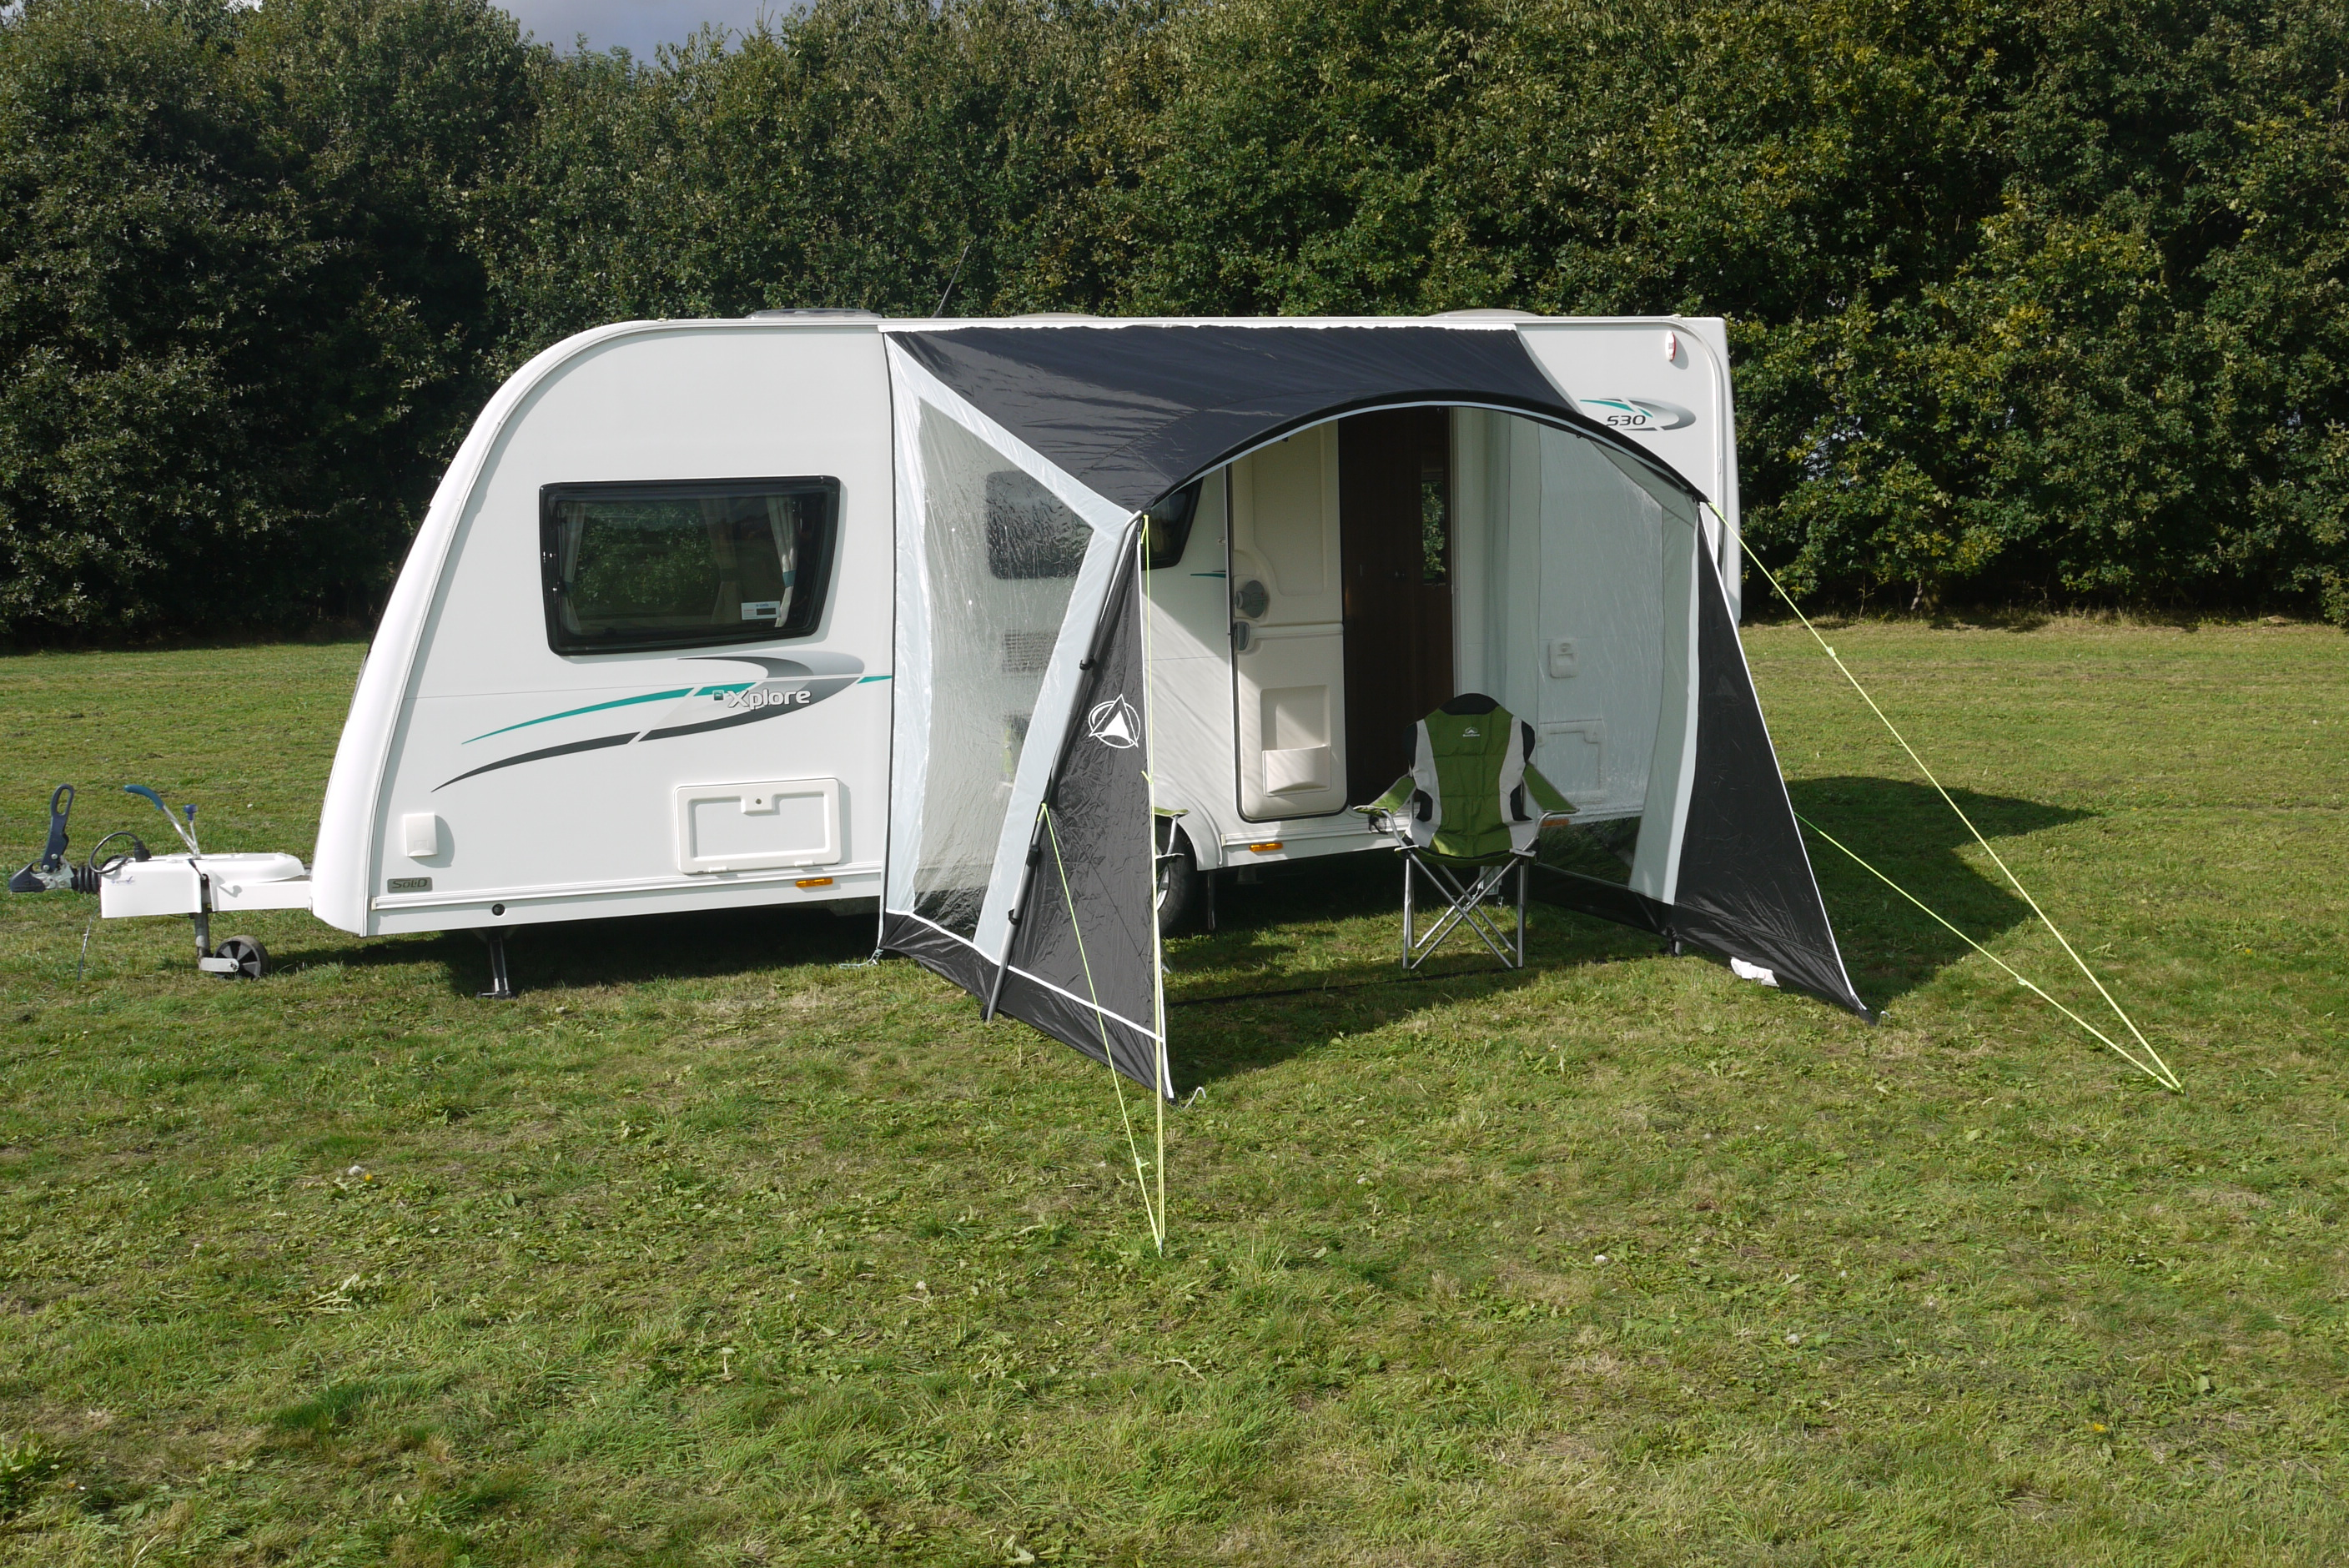 Sunncamp Swift 260 Canopy Camping International